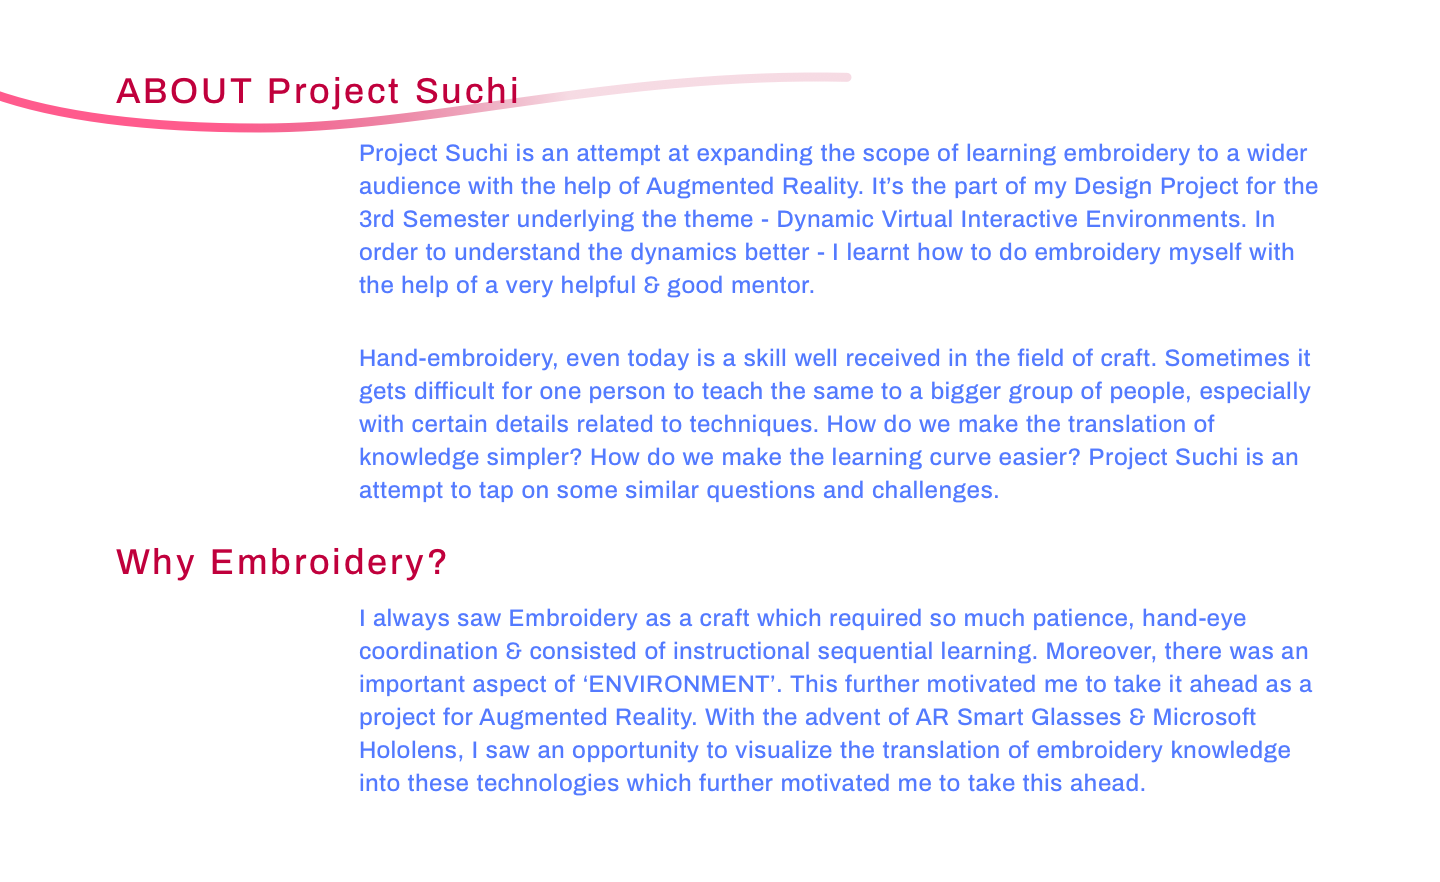 2-Project Suchi and why embroidery.png